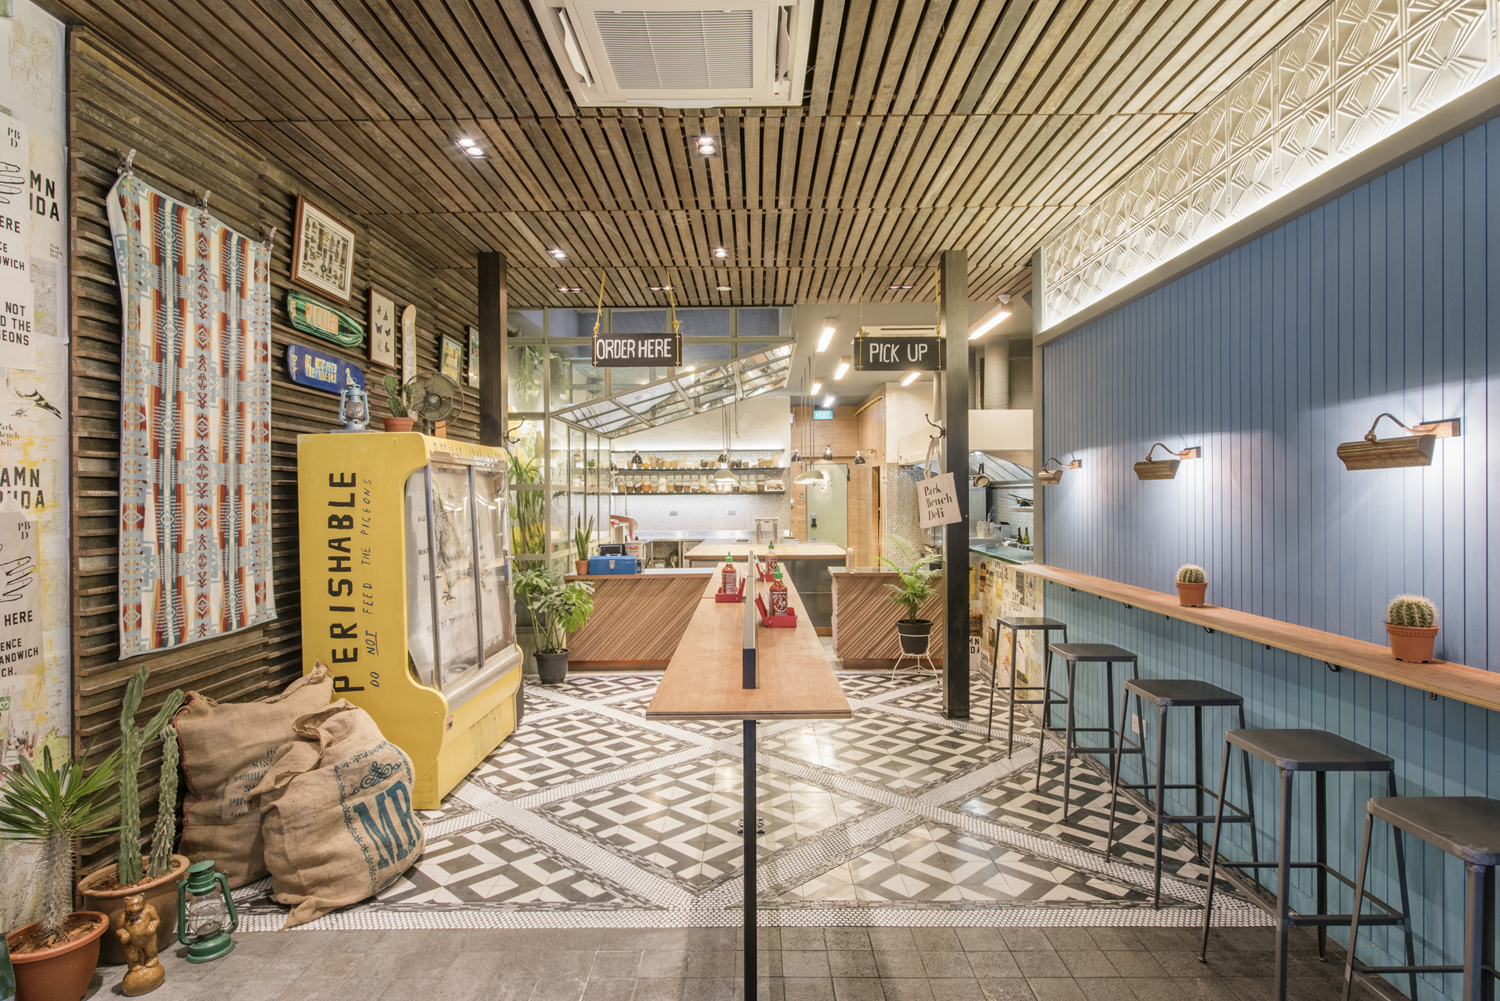 Branding & Interior Design – Park Bench Deli by Foreign Policy, Singapore